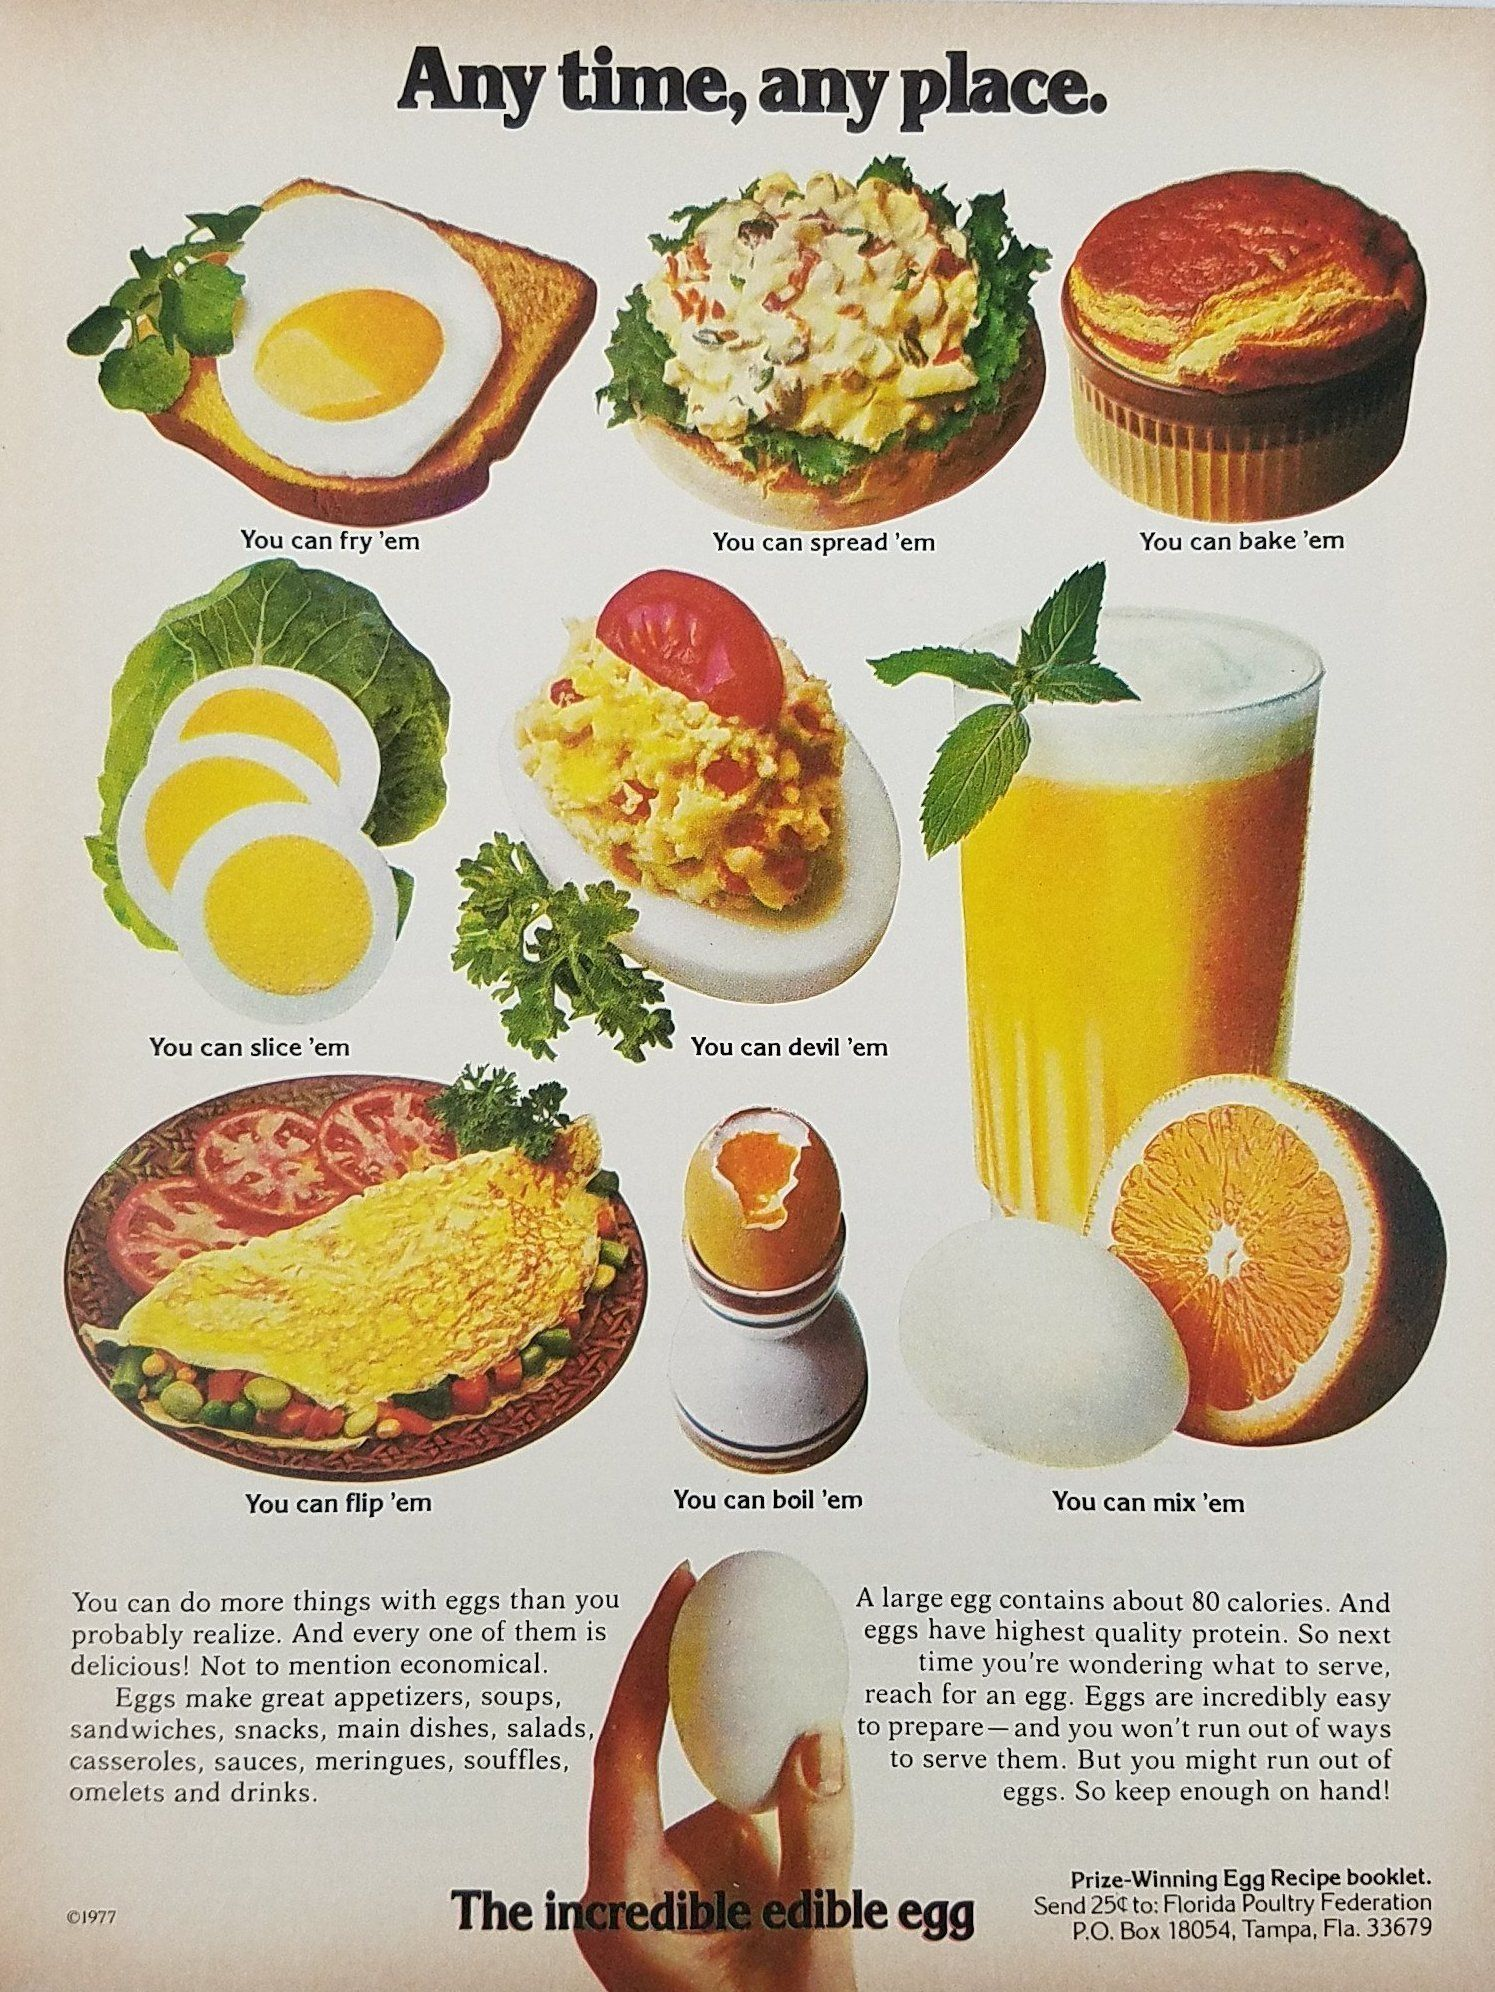 1977 Incredible Edible Egg Vintage Ad - Any Time Any Place